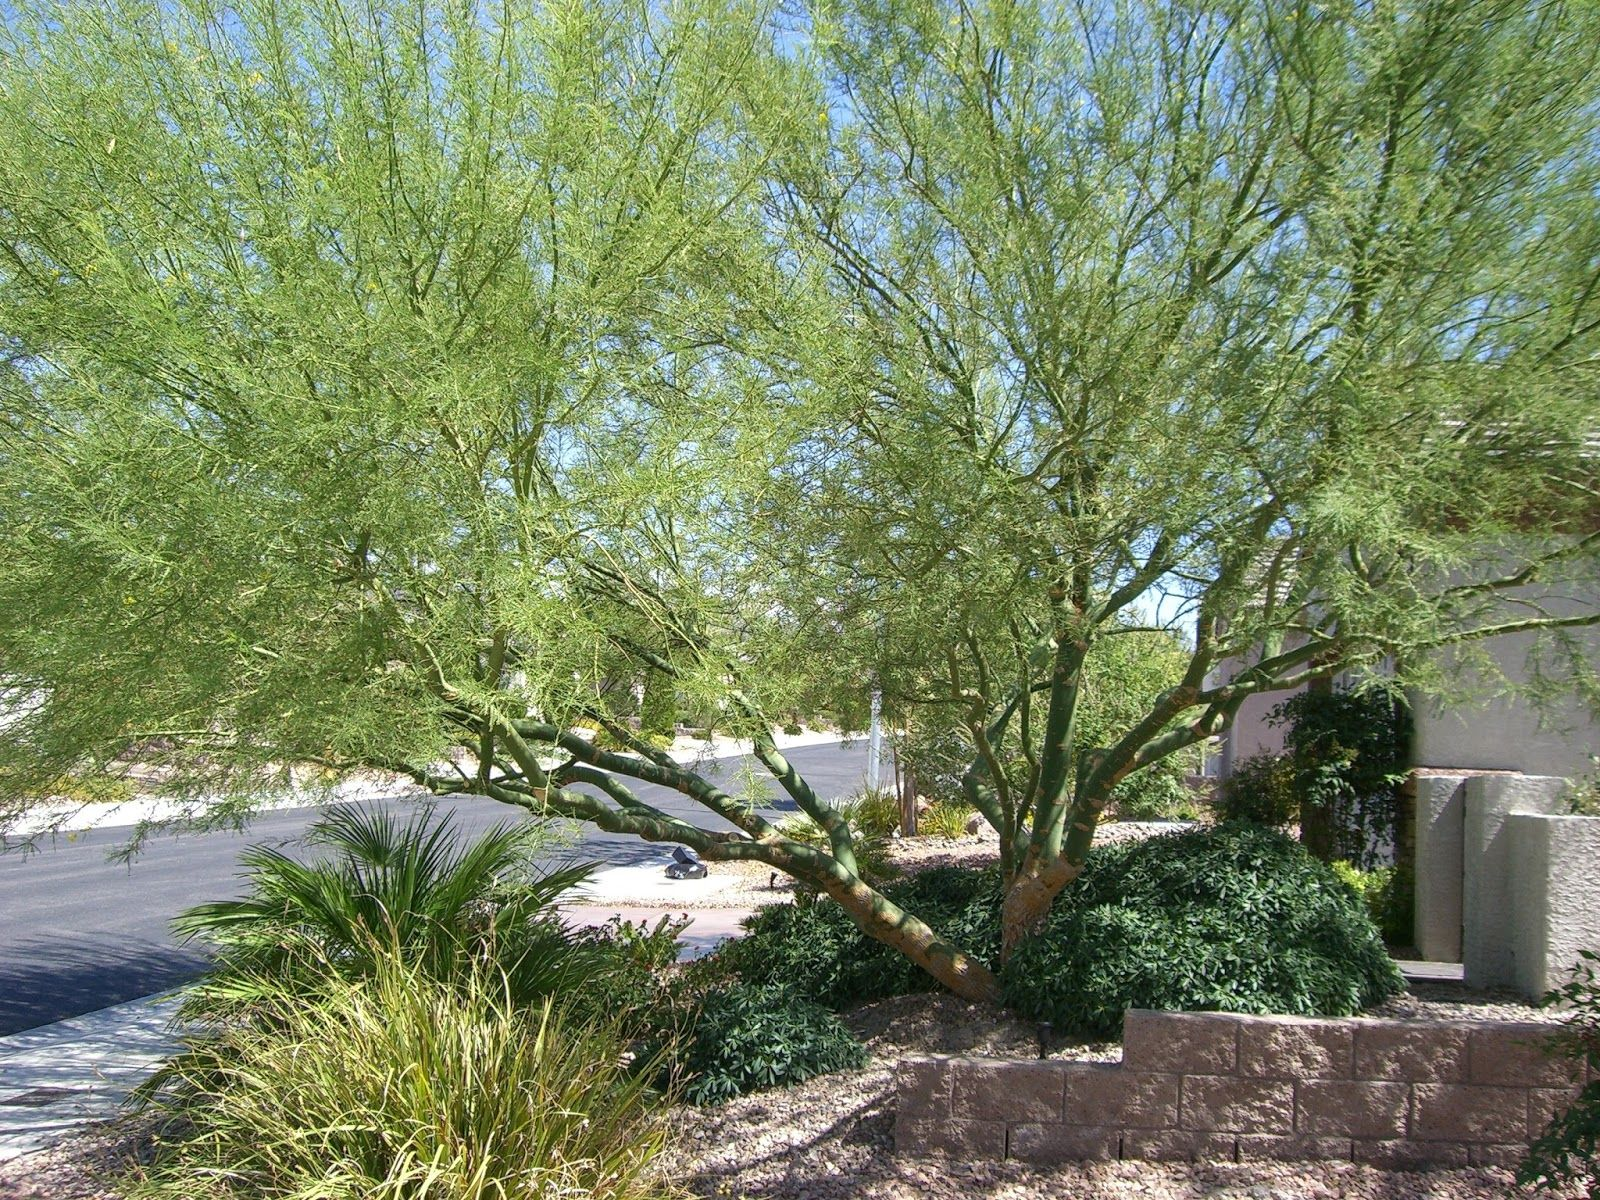 Awesome Desert Landscape Trees Combined With Cactus And Various Kind Of Desert Plants On The Smal Landscaping Trees Desert Landscaping Landscaping Around Trees